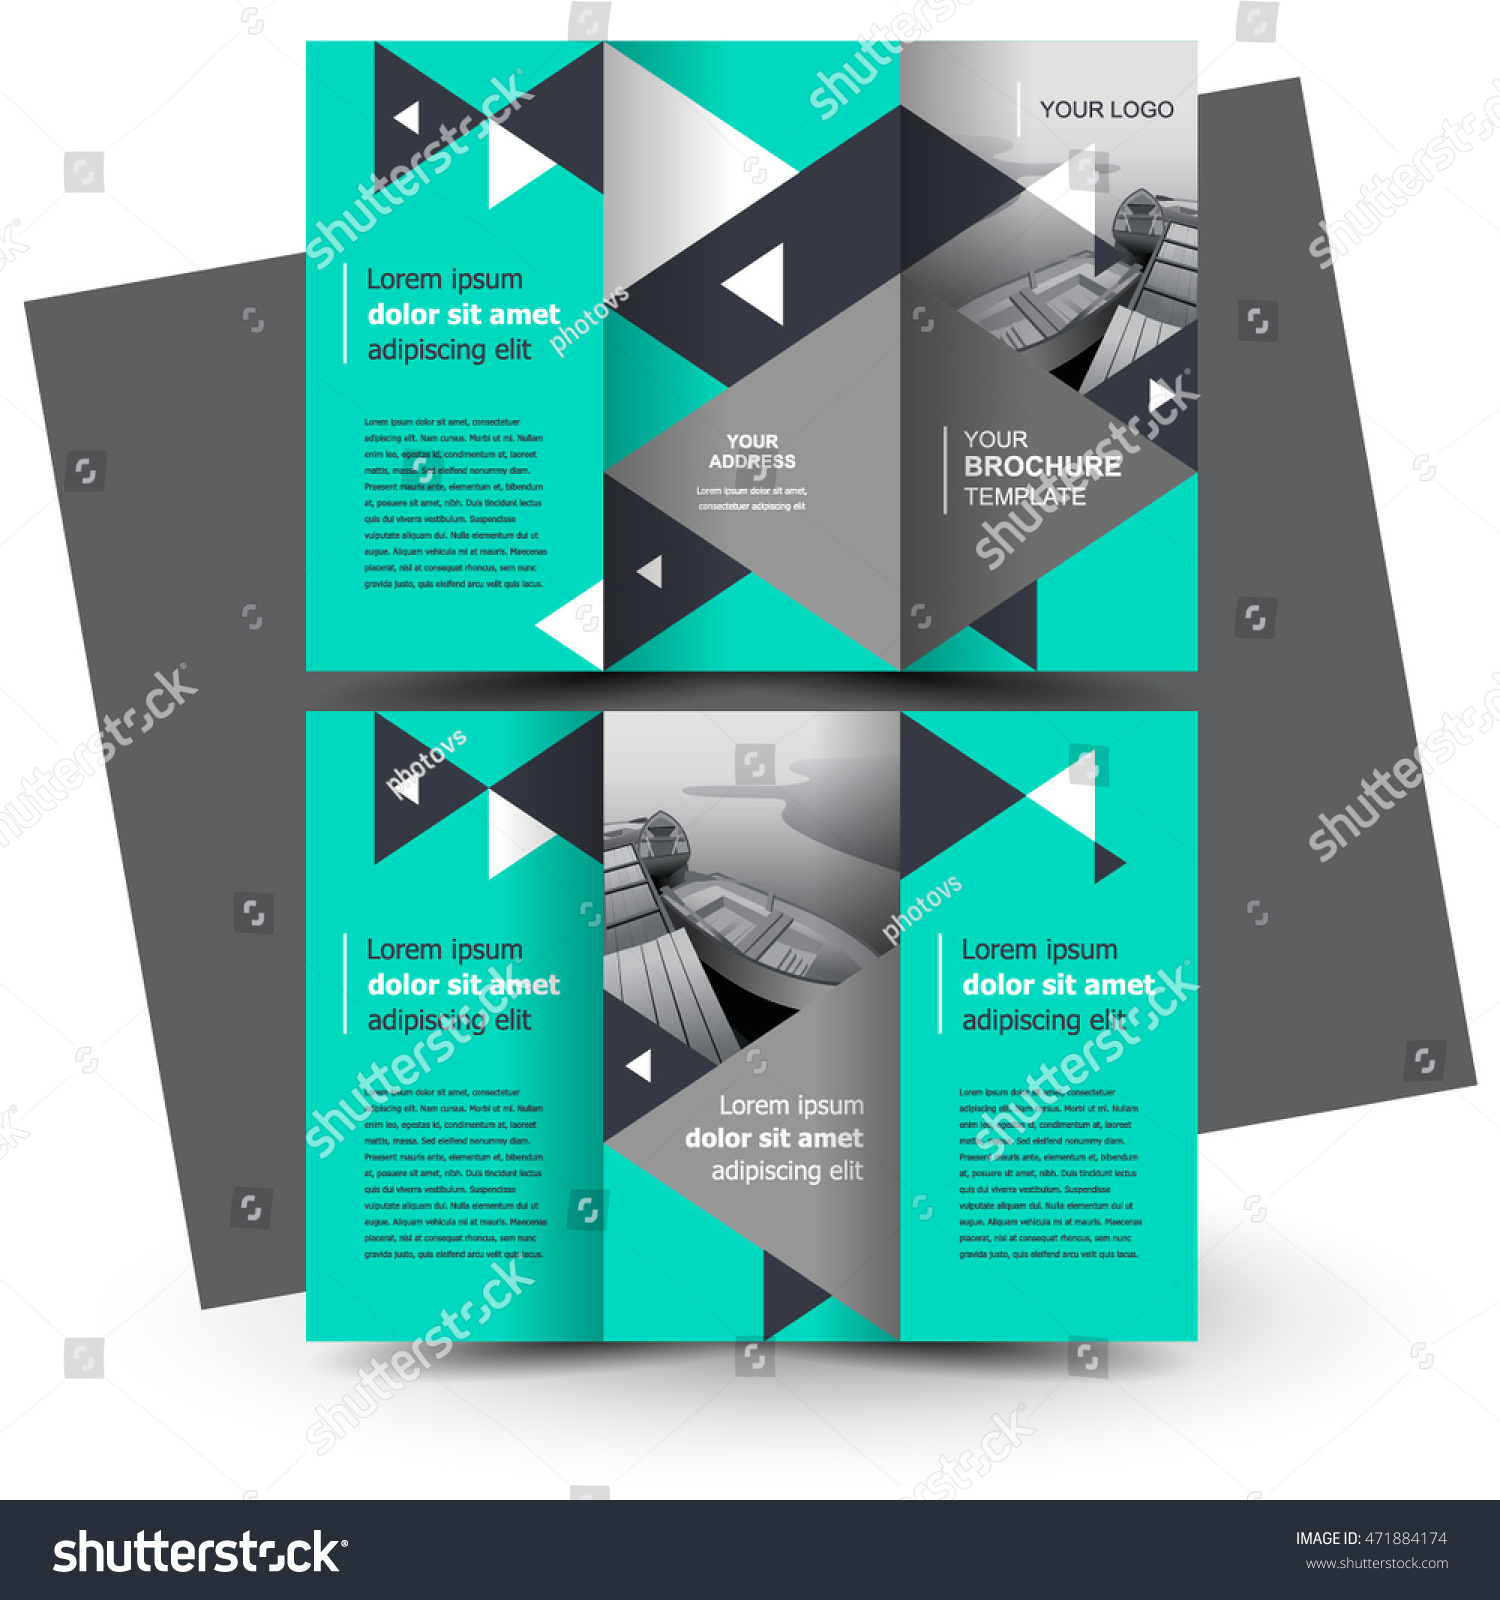 Brochure design templates brochure template design vector for Creative brochure template